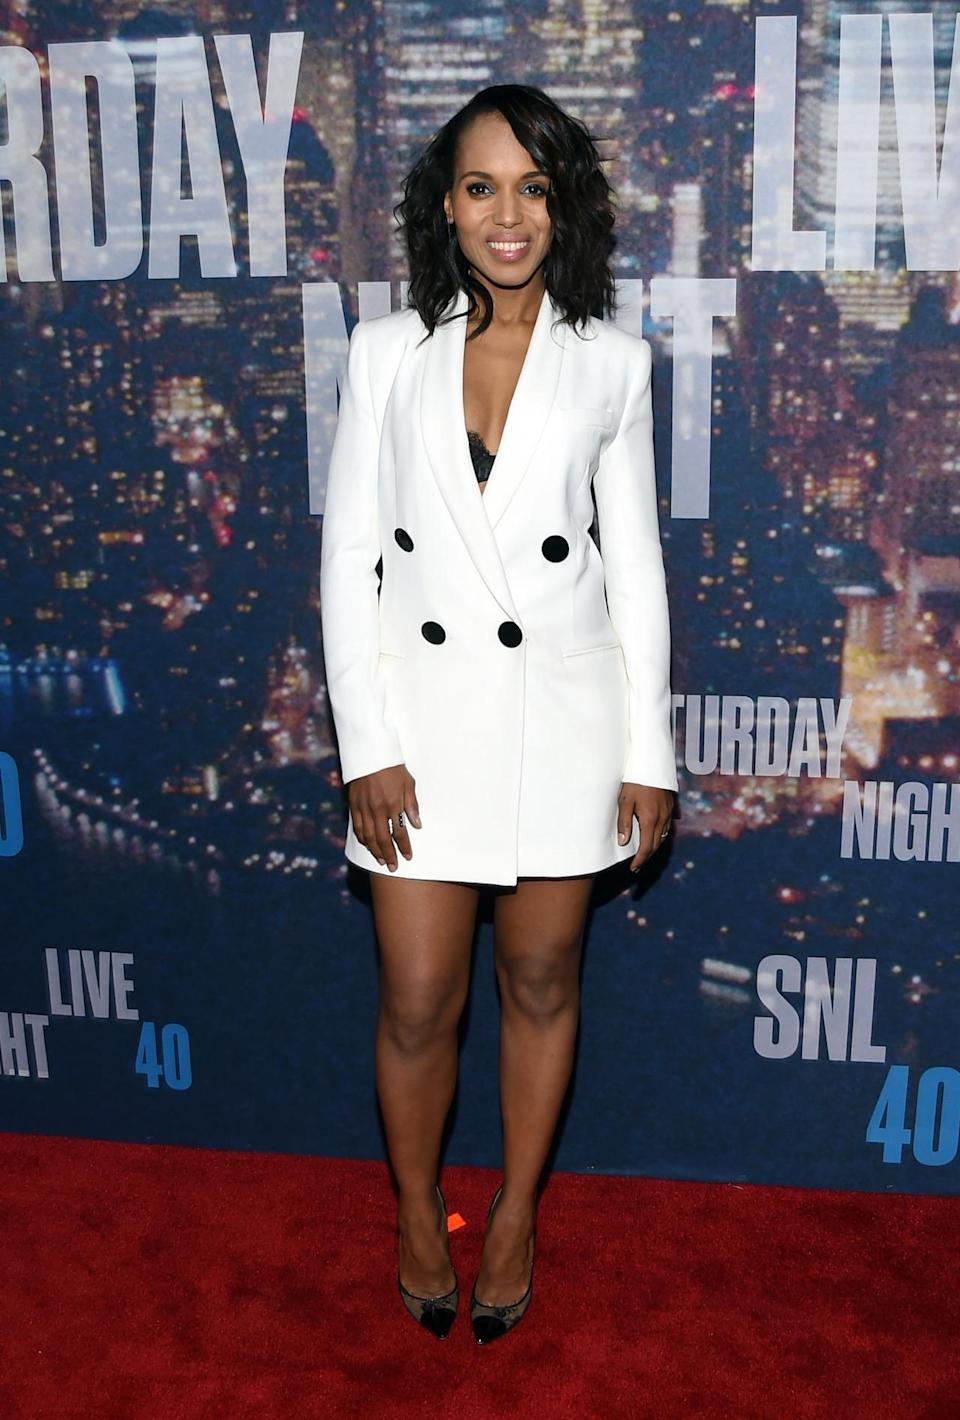 Wearing a winter white suit dress from Adam Lippes, Kerry Washington brought some sex appeal to the red carpet at 30 Rock.